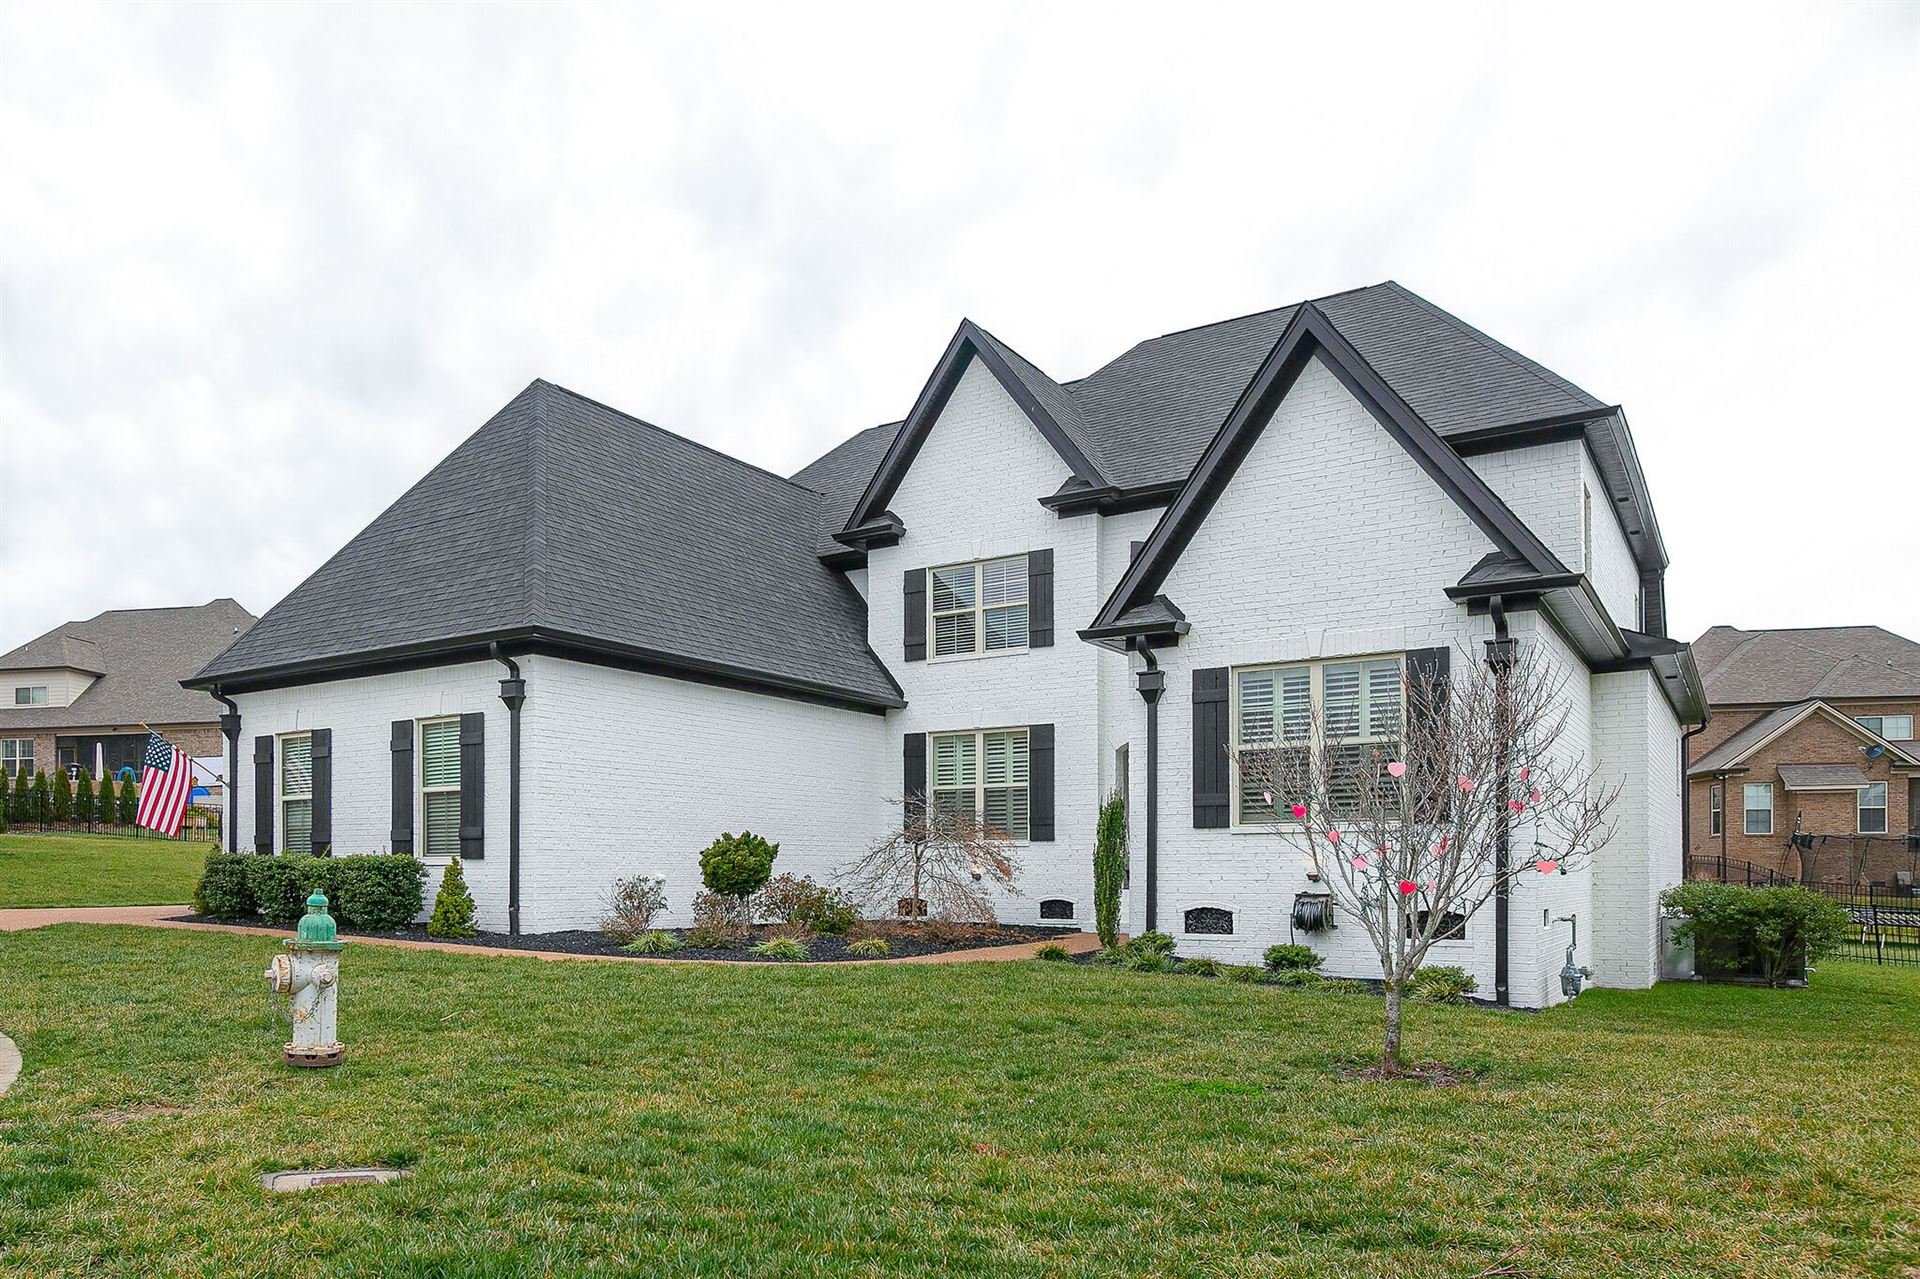 Photo of 3014 Brisbane Ct, Spring Hill, TN 37174 (MLS # 2232674)